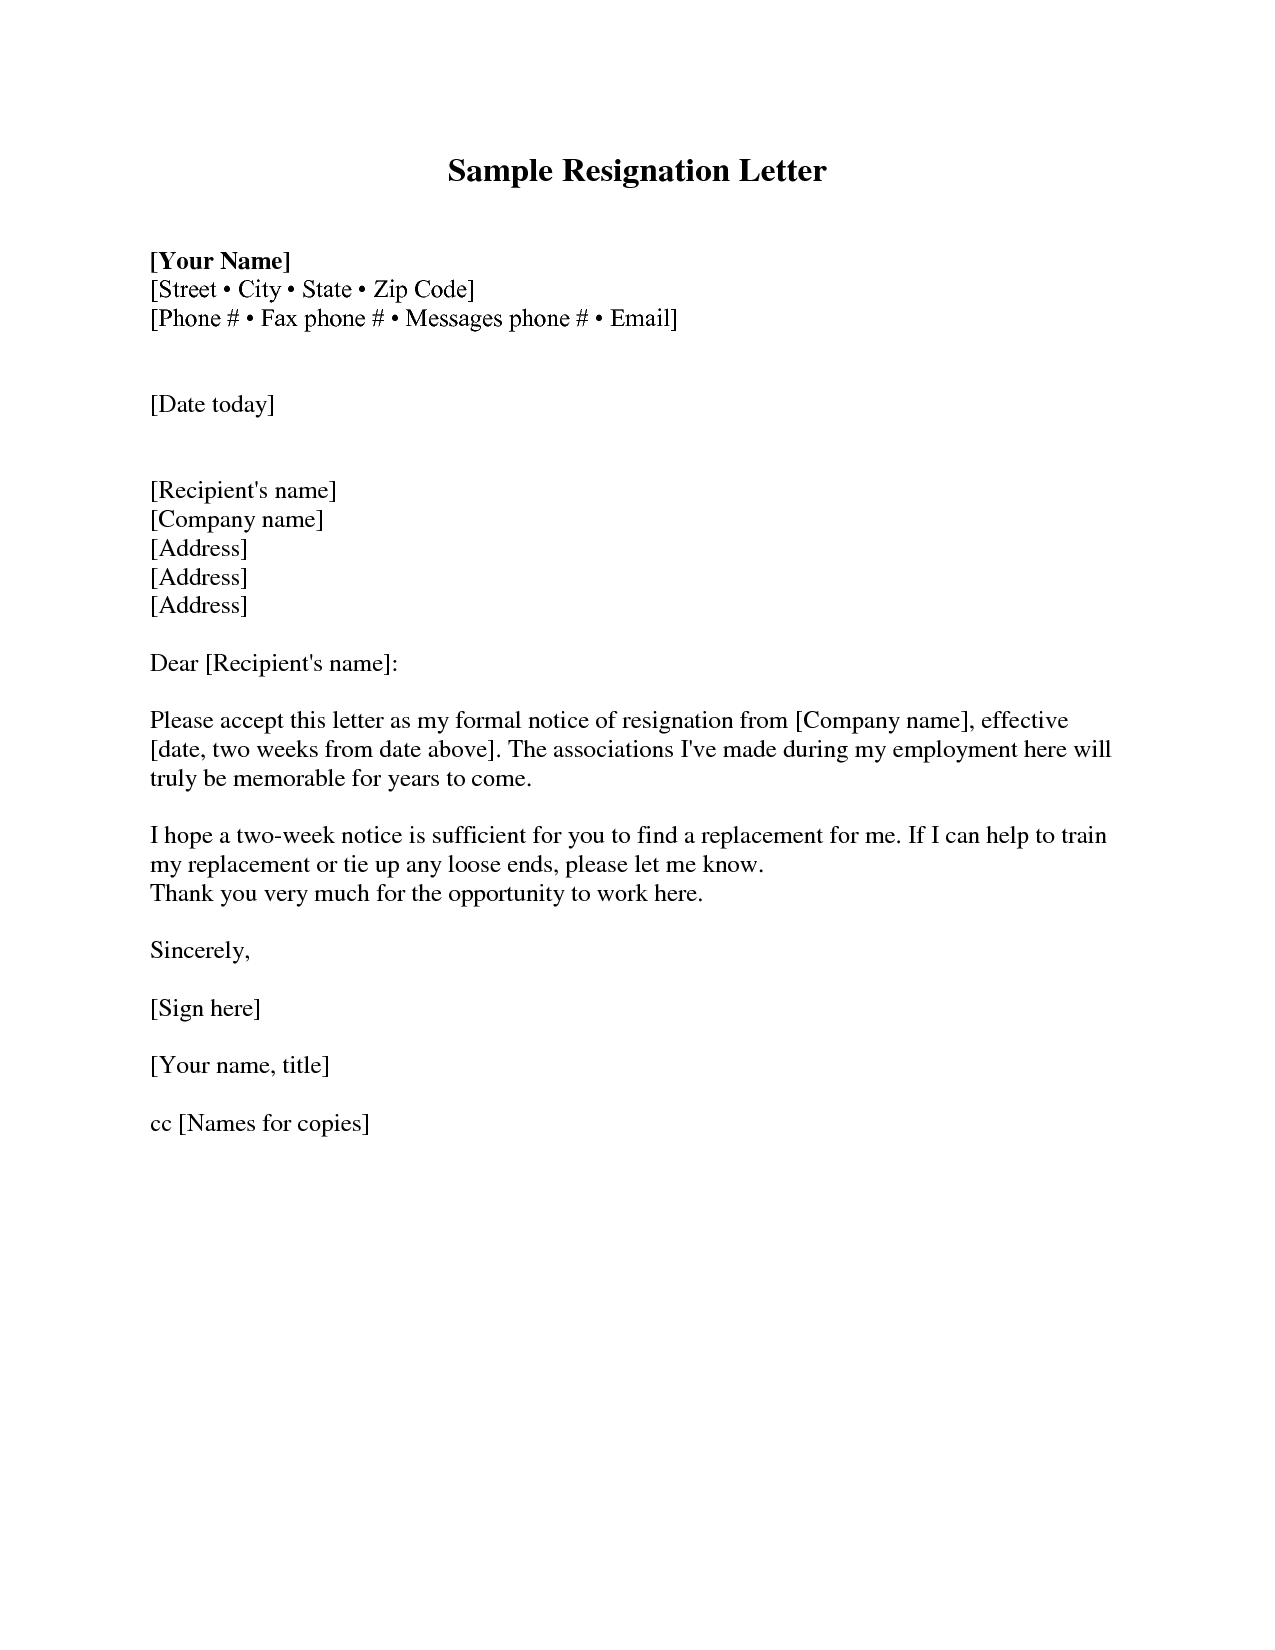 Free Printable Resignation Letter Template - Resignation Letter Sample 2 Weeks Notice Free2img